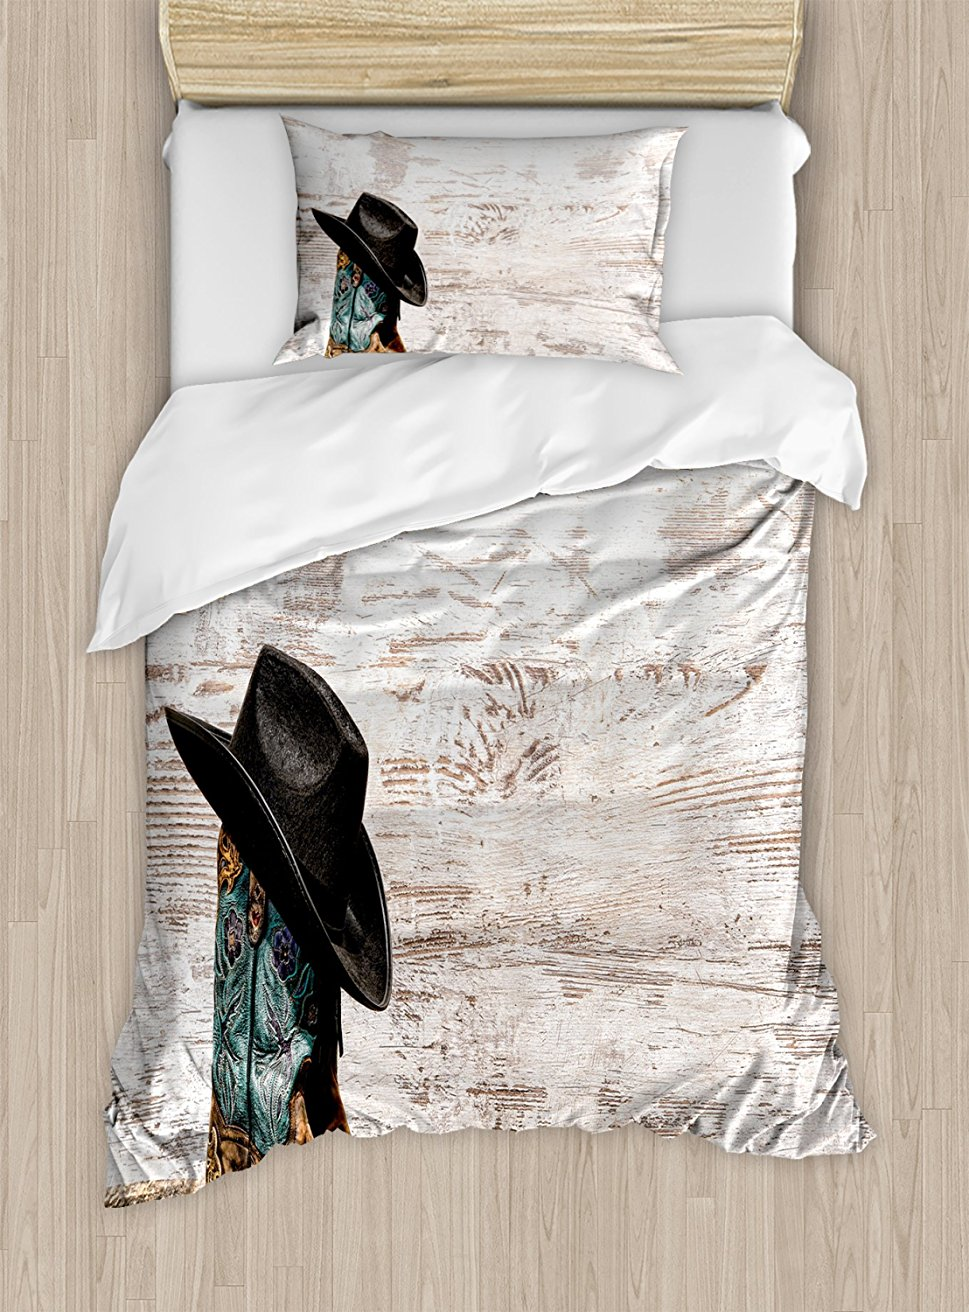 Western Duvet Cover Set Traditional Rodeo Cowboy Hat And Cowgirl Boots Retro Grunge Background Decorative 4 Piece Bedding Set